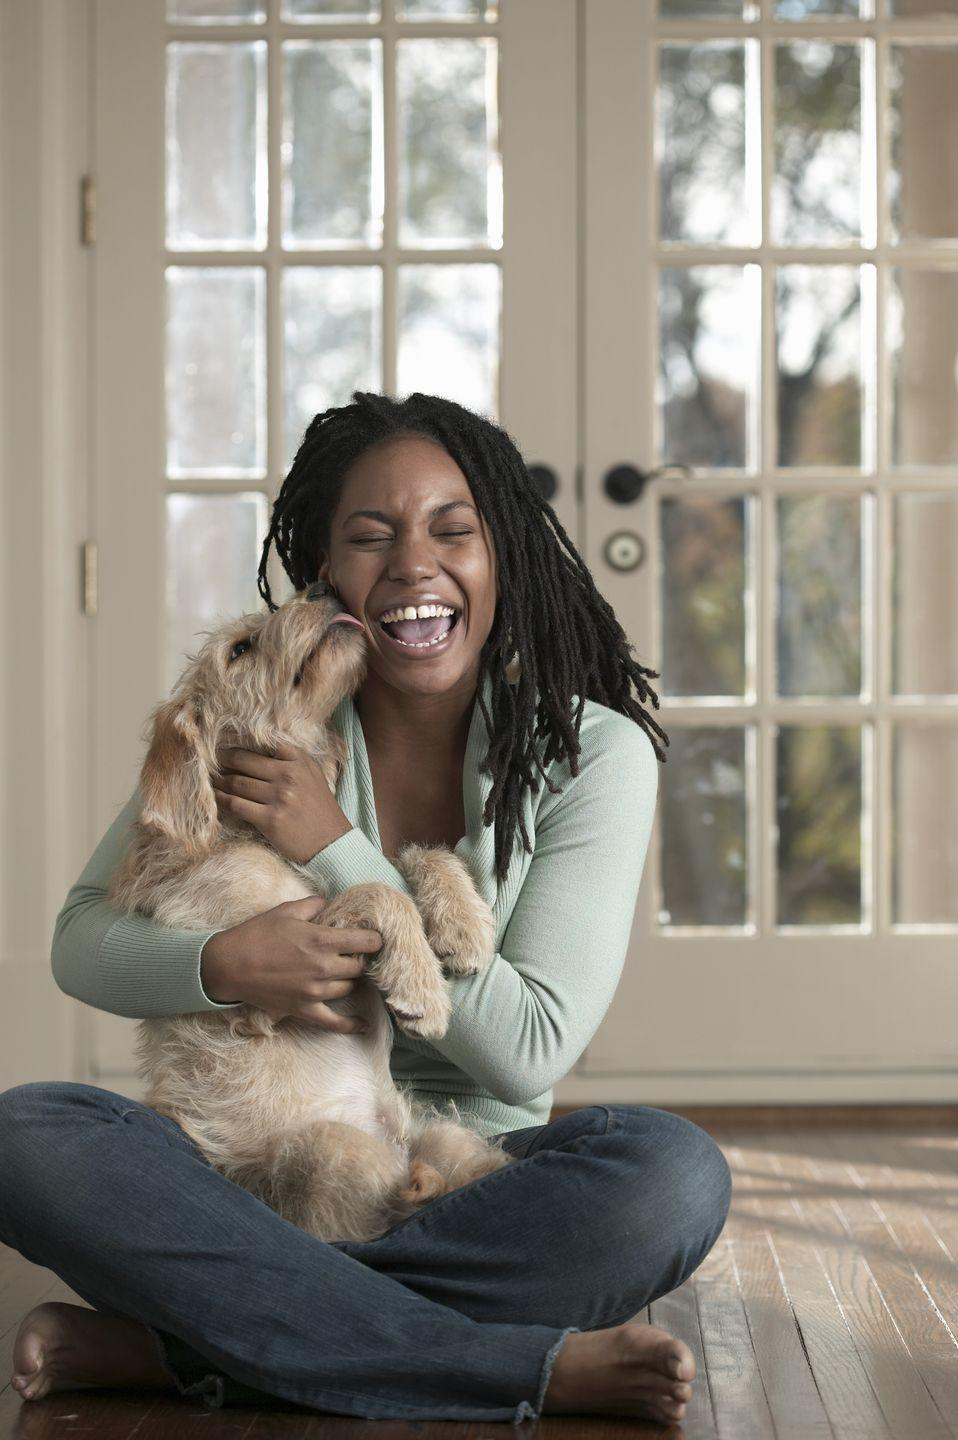 "<p>Consider this your official medical advice to spend more time on the couch with your dog. Cuddling with your pets can make you feel good, giving a boost to your mental health, which is so important when it comes to staying healthy. ""This is very calming and can reduce stress and lower your heart rate,"" says Deirdre Pierce, RN, BSN, of University of Vermont Medical Center. ""If your furry friend is the walkable type, take them for walks, which is a healthy activity for both of you."" </p>"